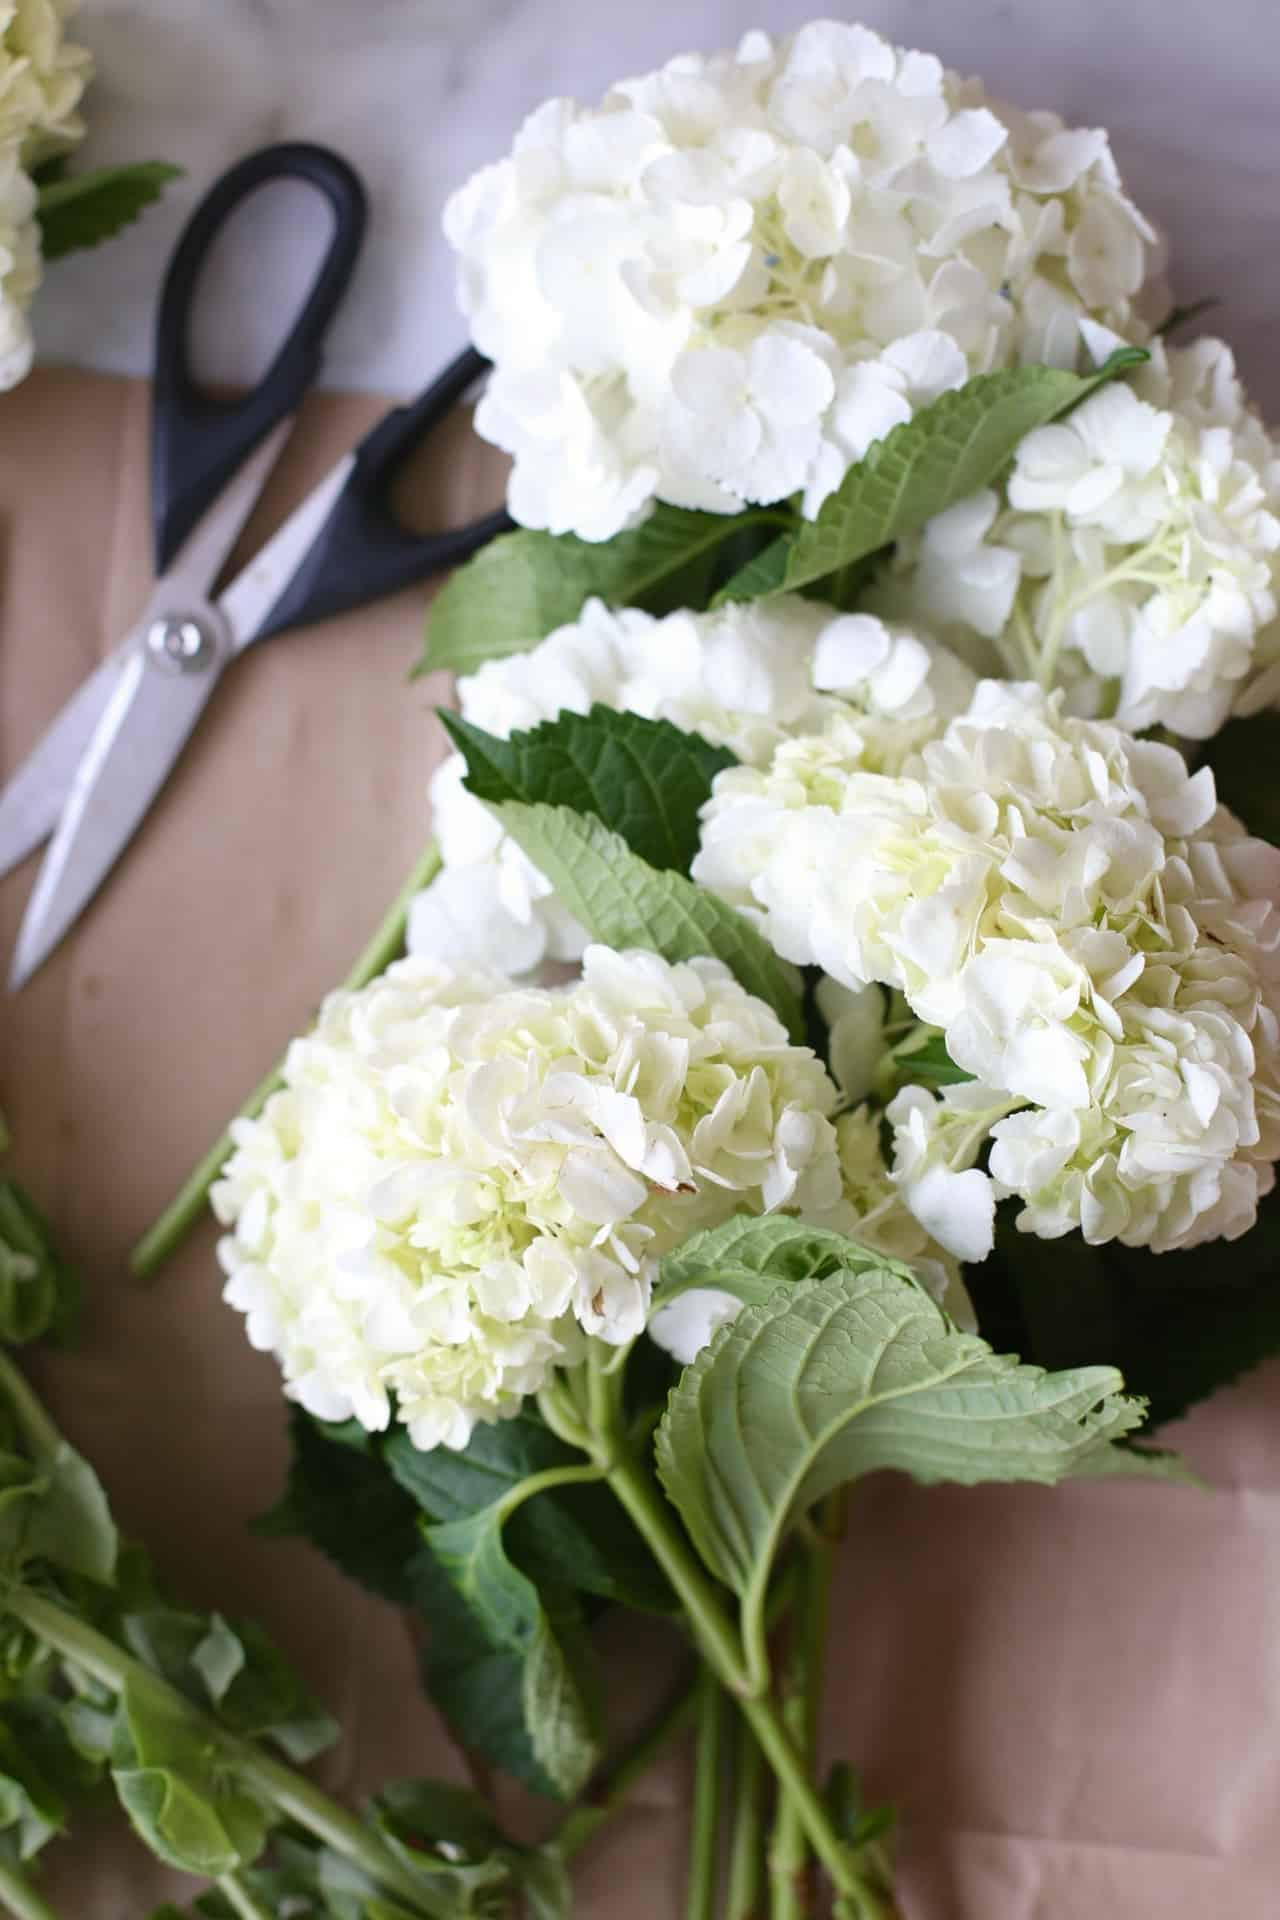 Hydrangea flower arrangement at home